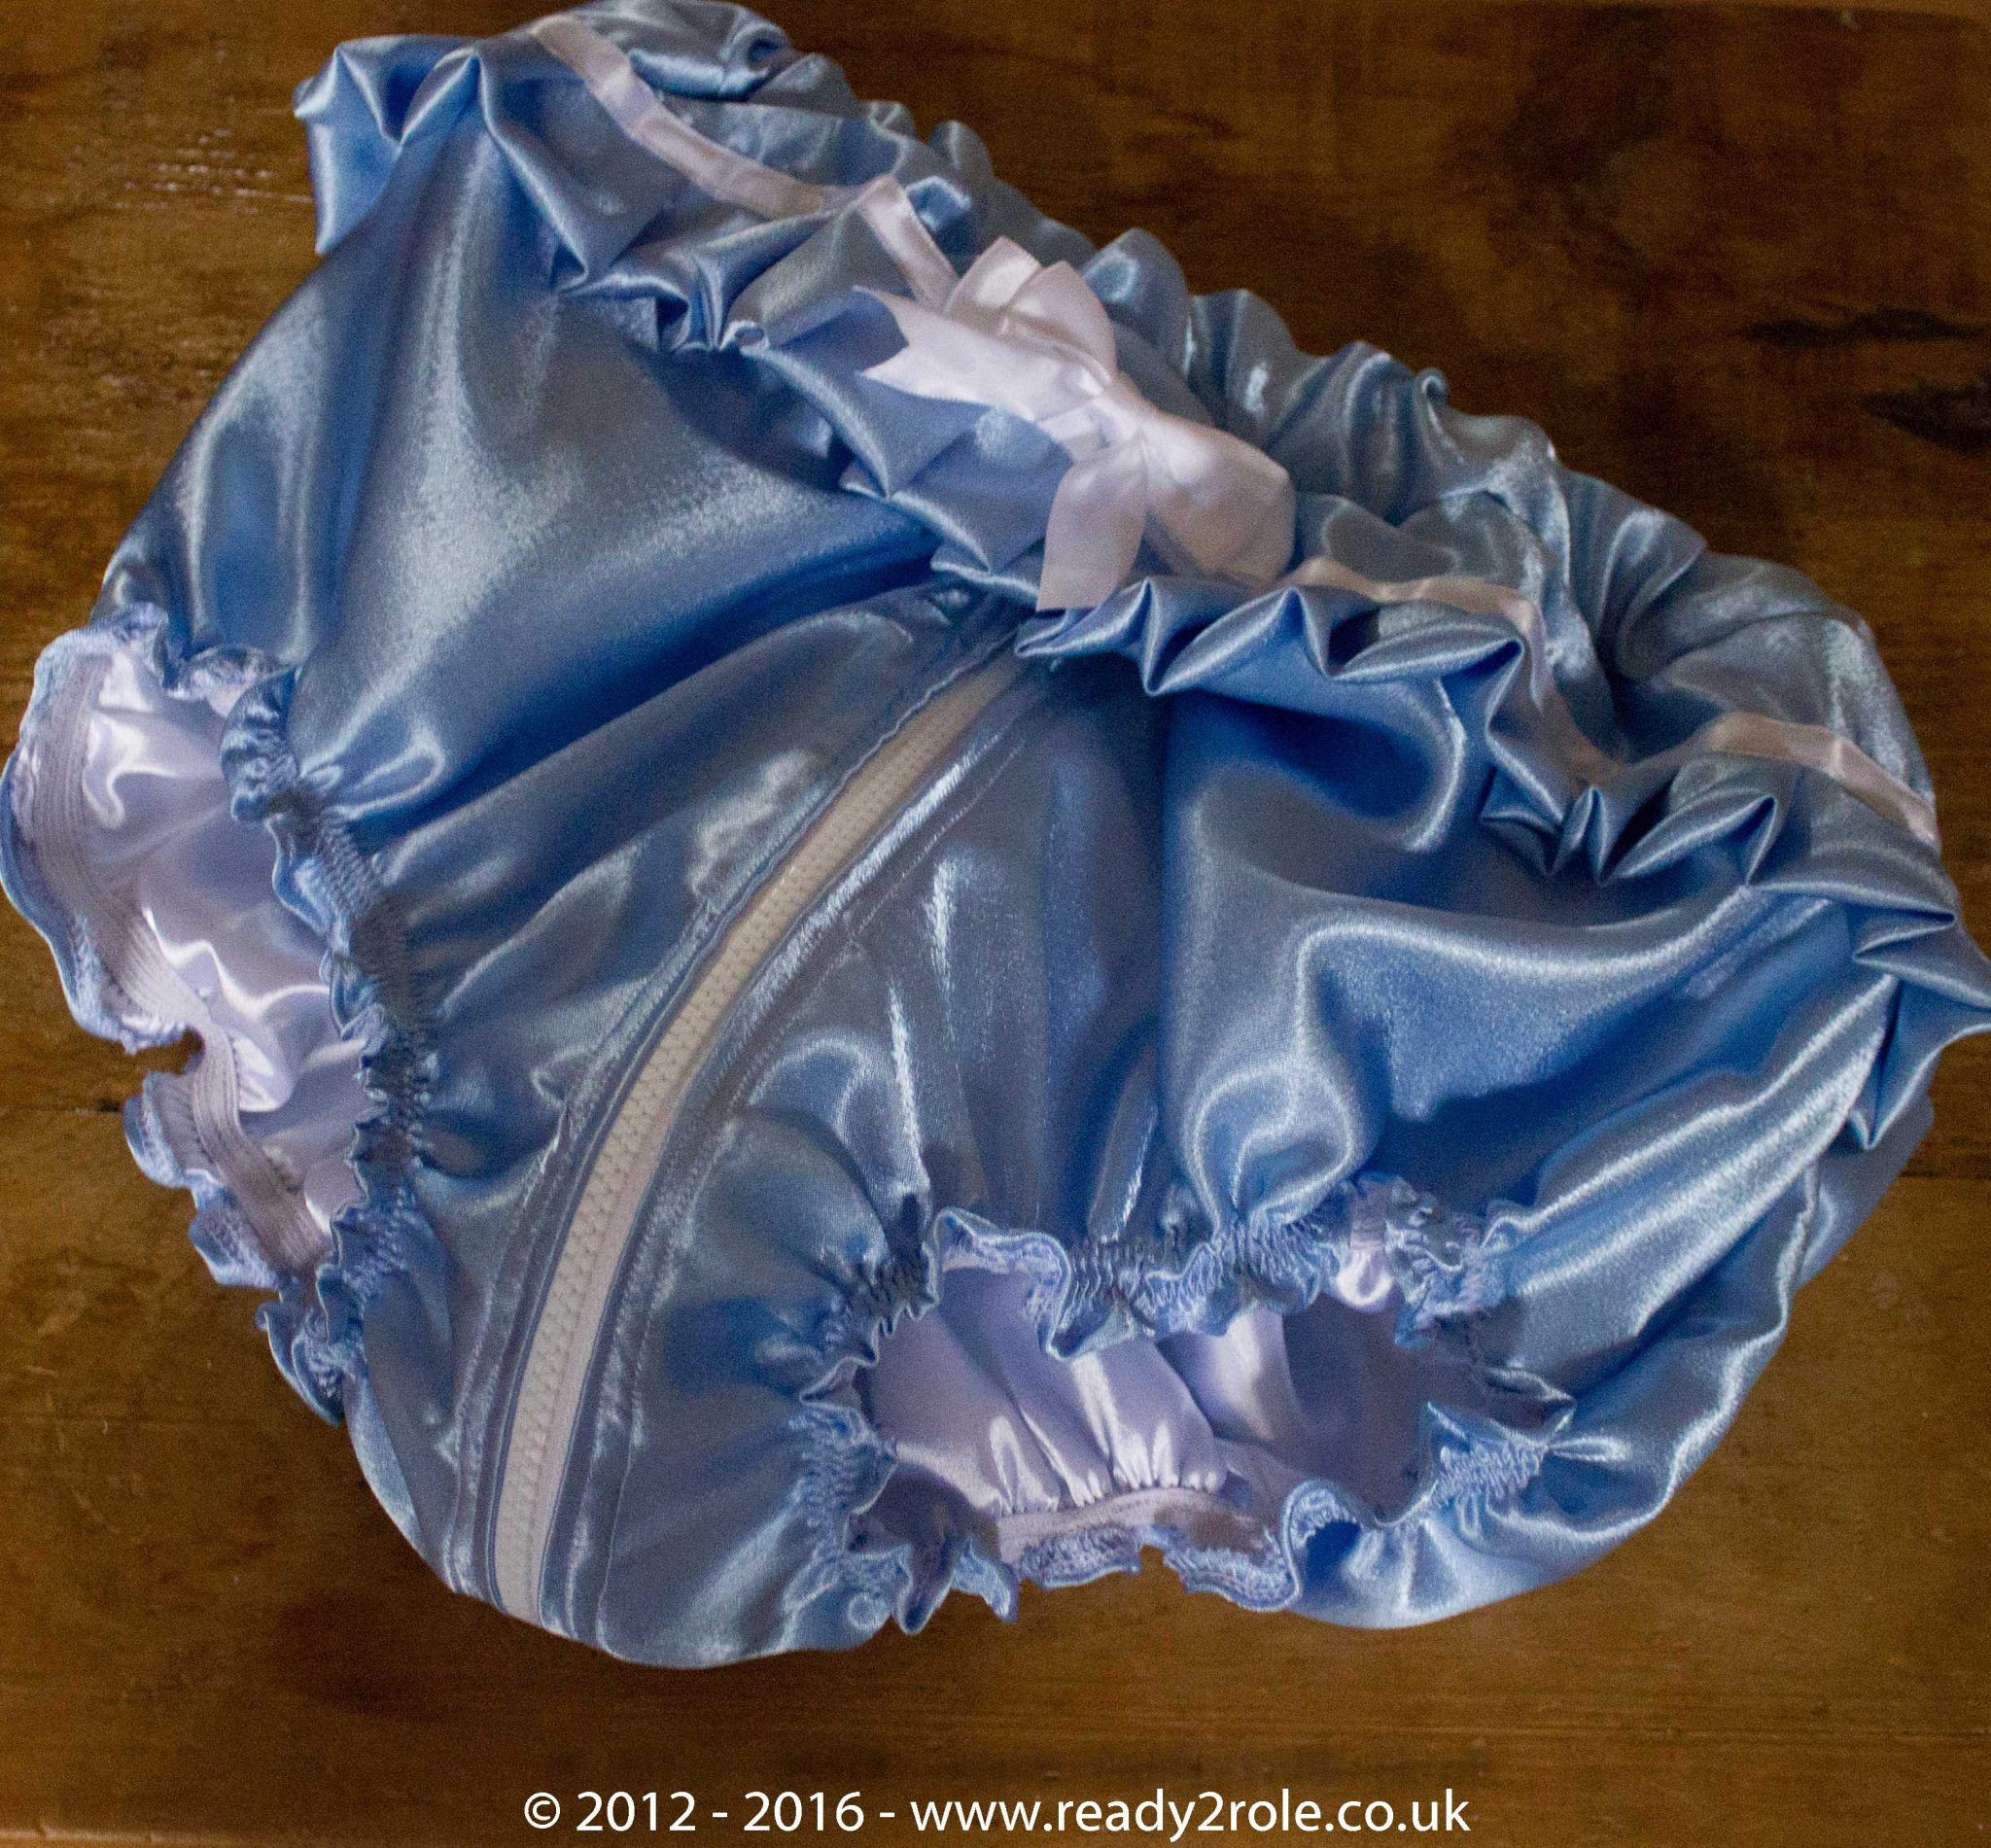 Sissy Frilly Satin Panties with Zip Thru Crotch – Baby Blue Satin